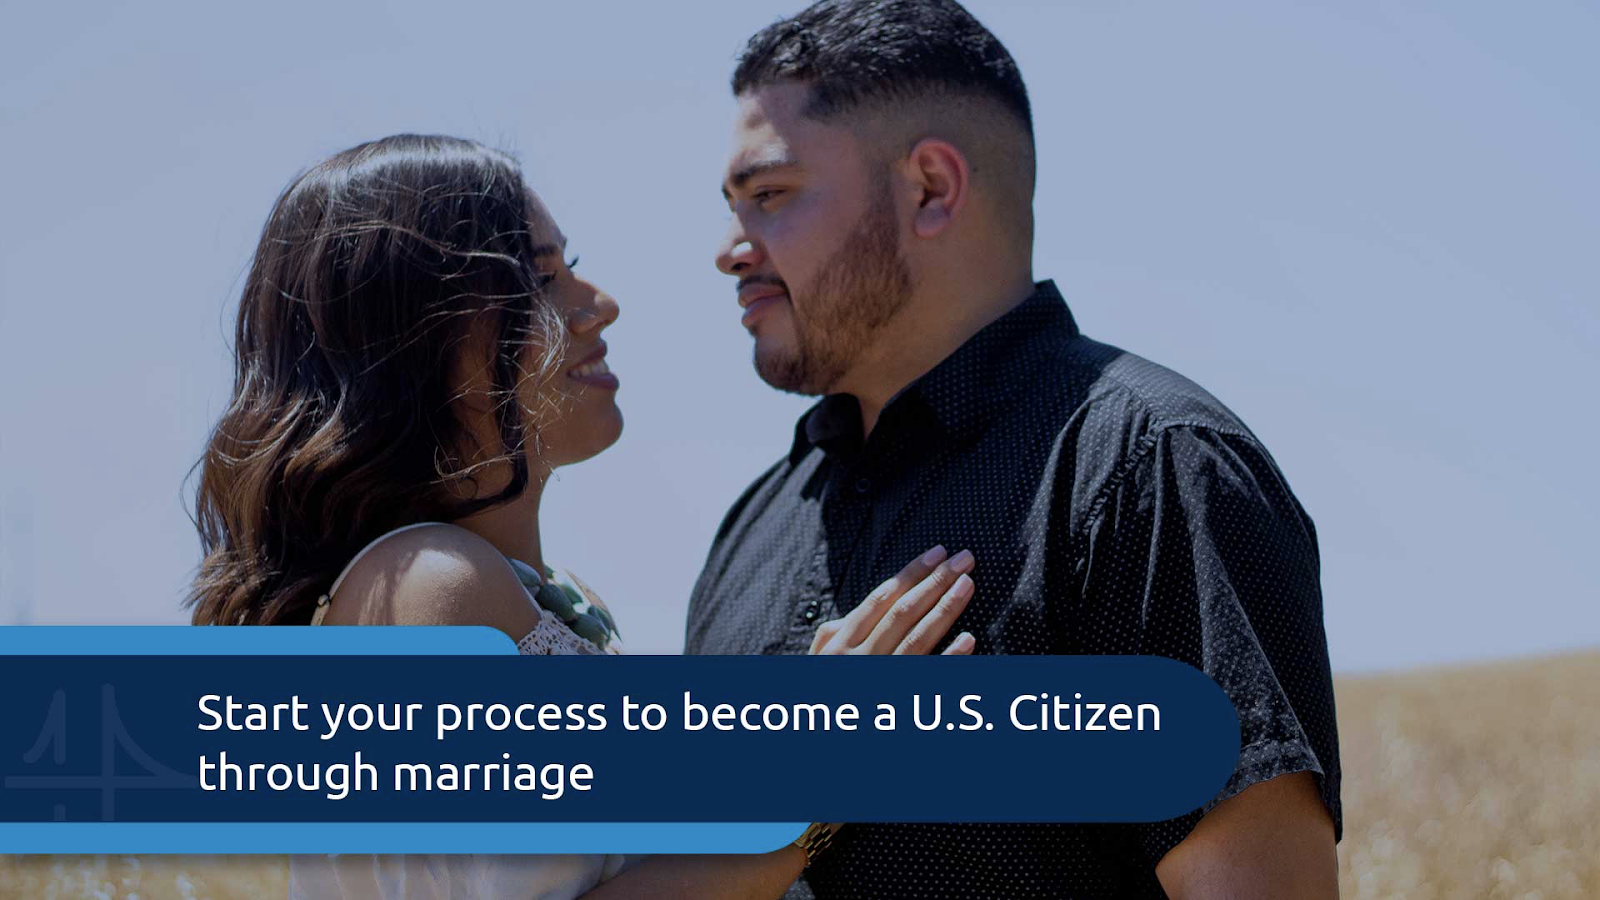 How to apply for citizenship through marriage